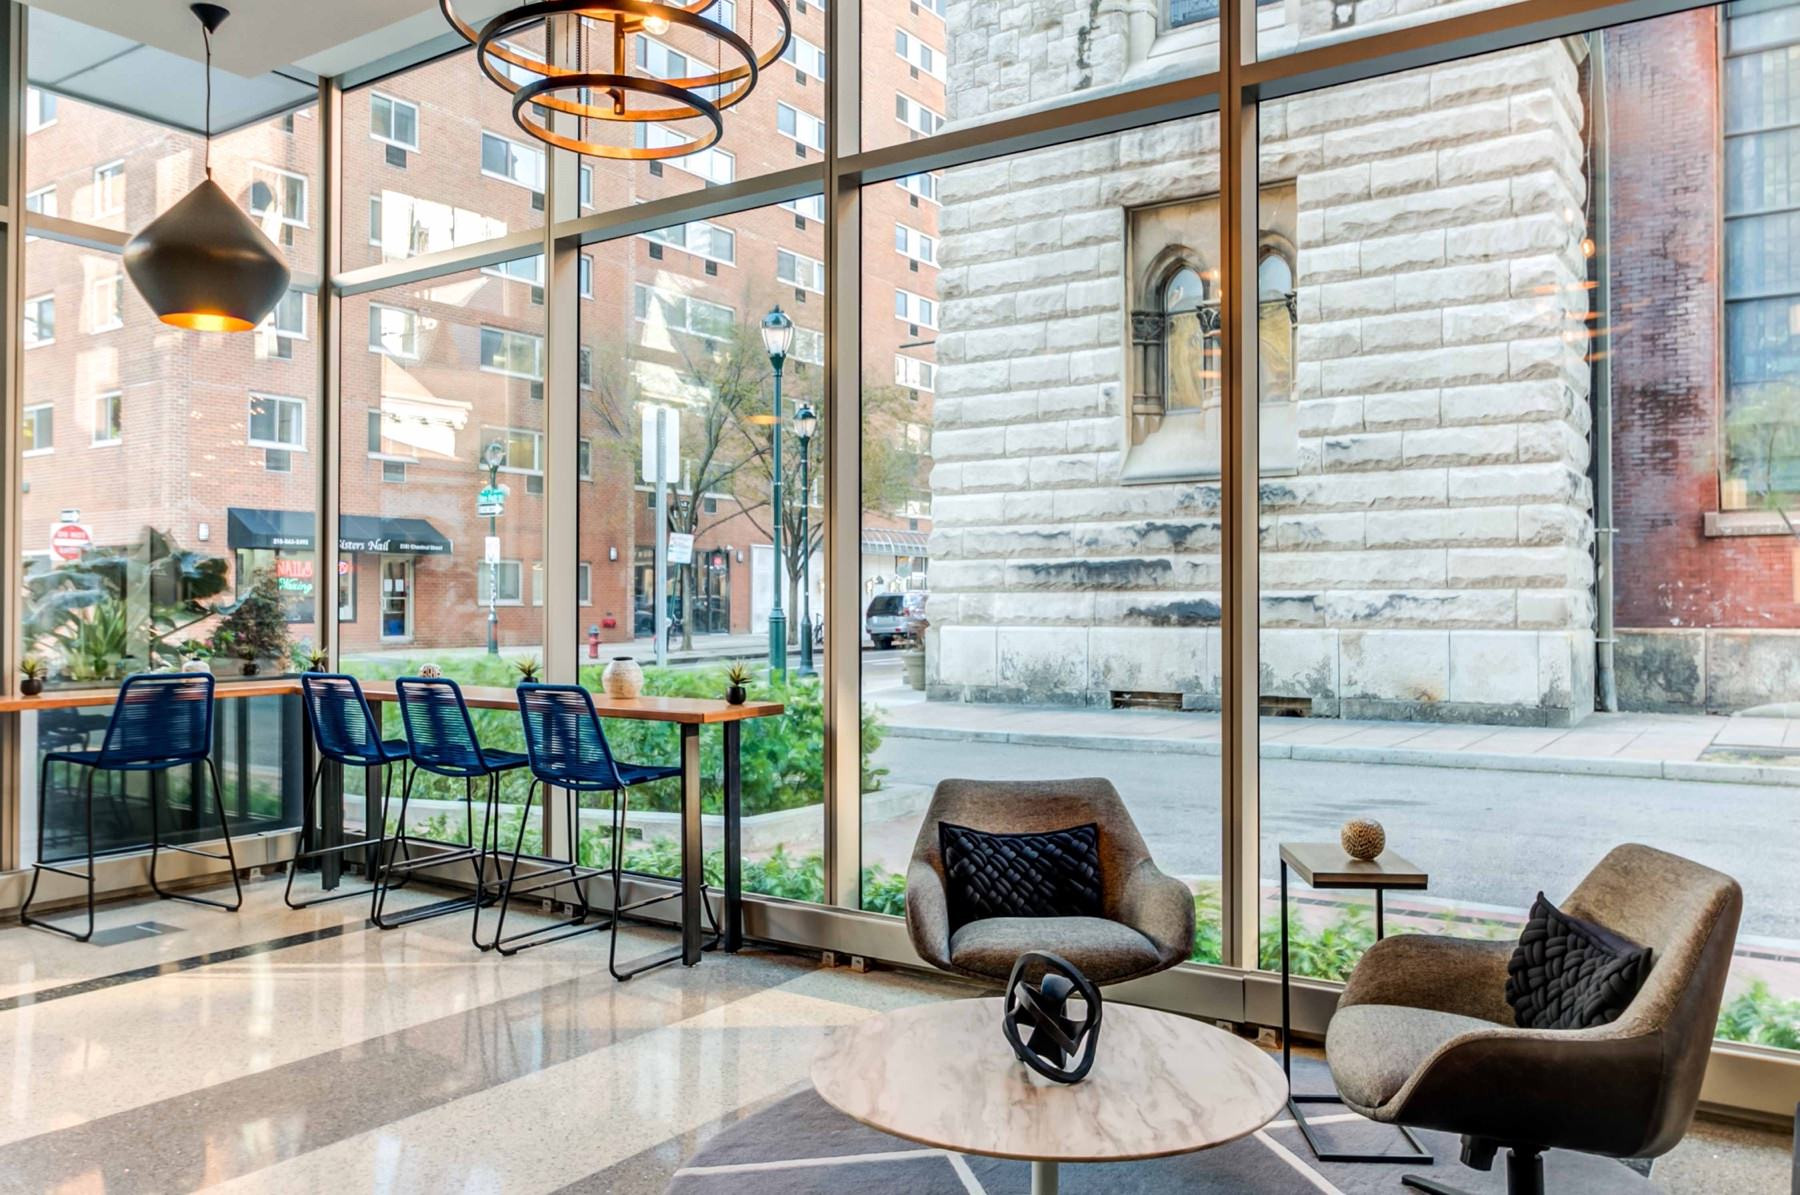 The 2116 Chestnut Amenity Spaces